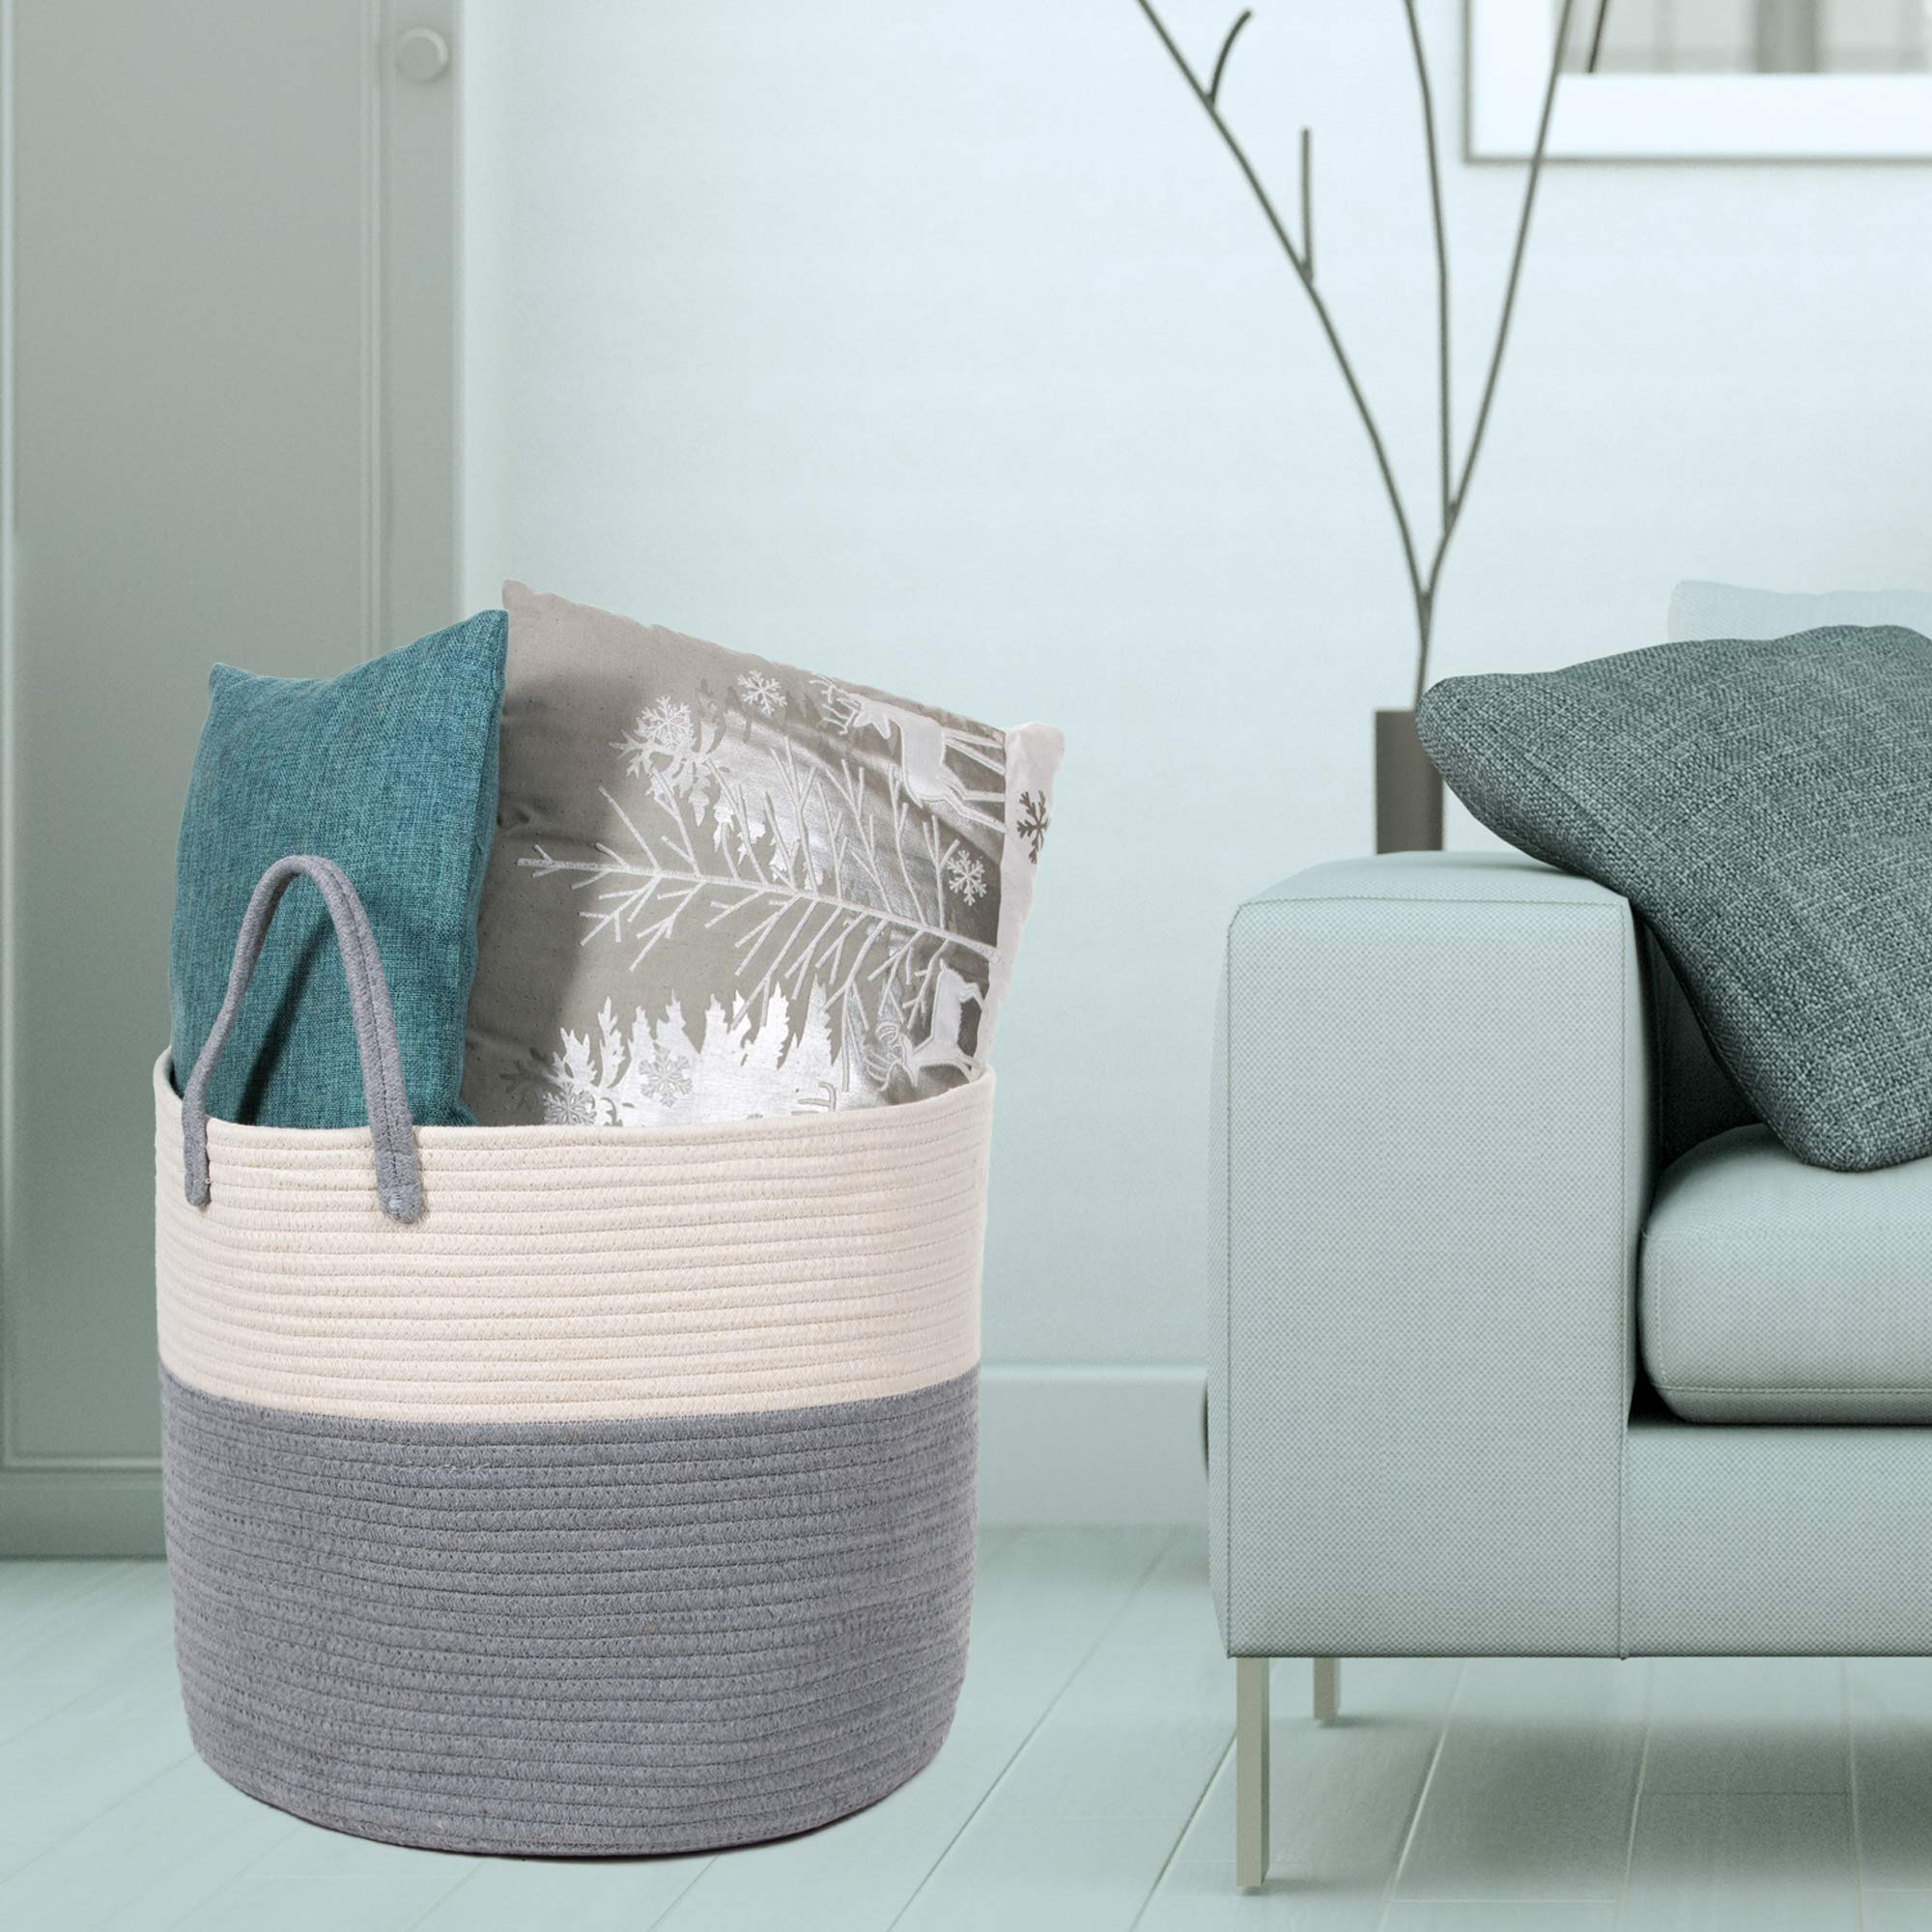 Extra Large Cotton Rope Basket 17 x 14.7 with Handles, for Baby Laundry Basket Woven Blanket Basket Nursery Bin by YOONLIVING (Image #6)